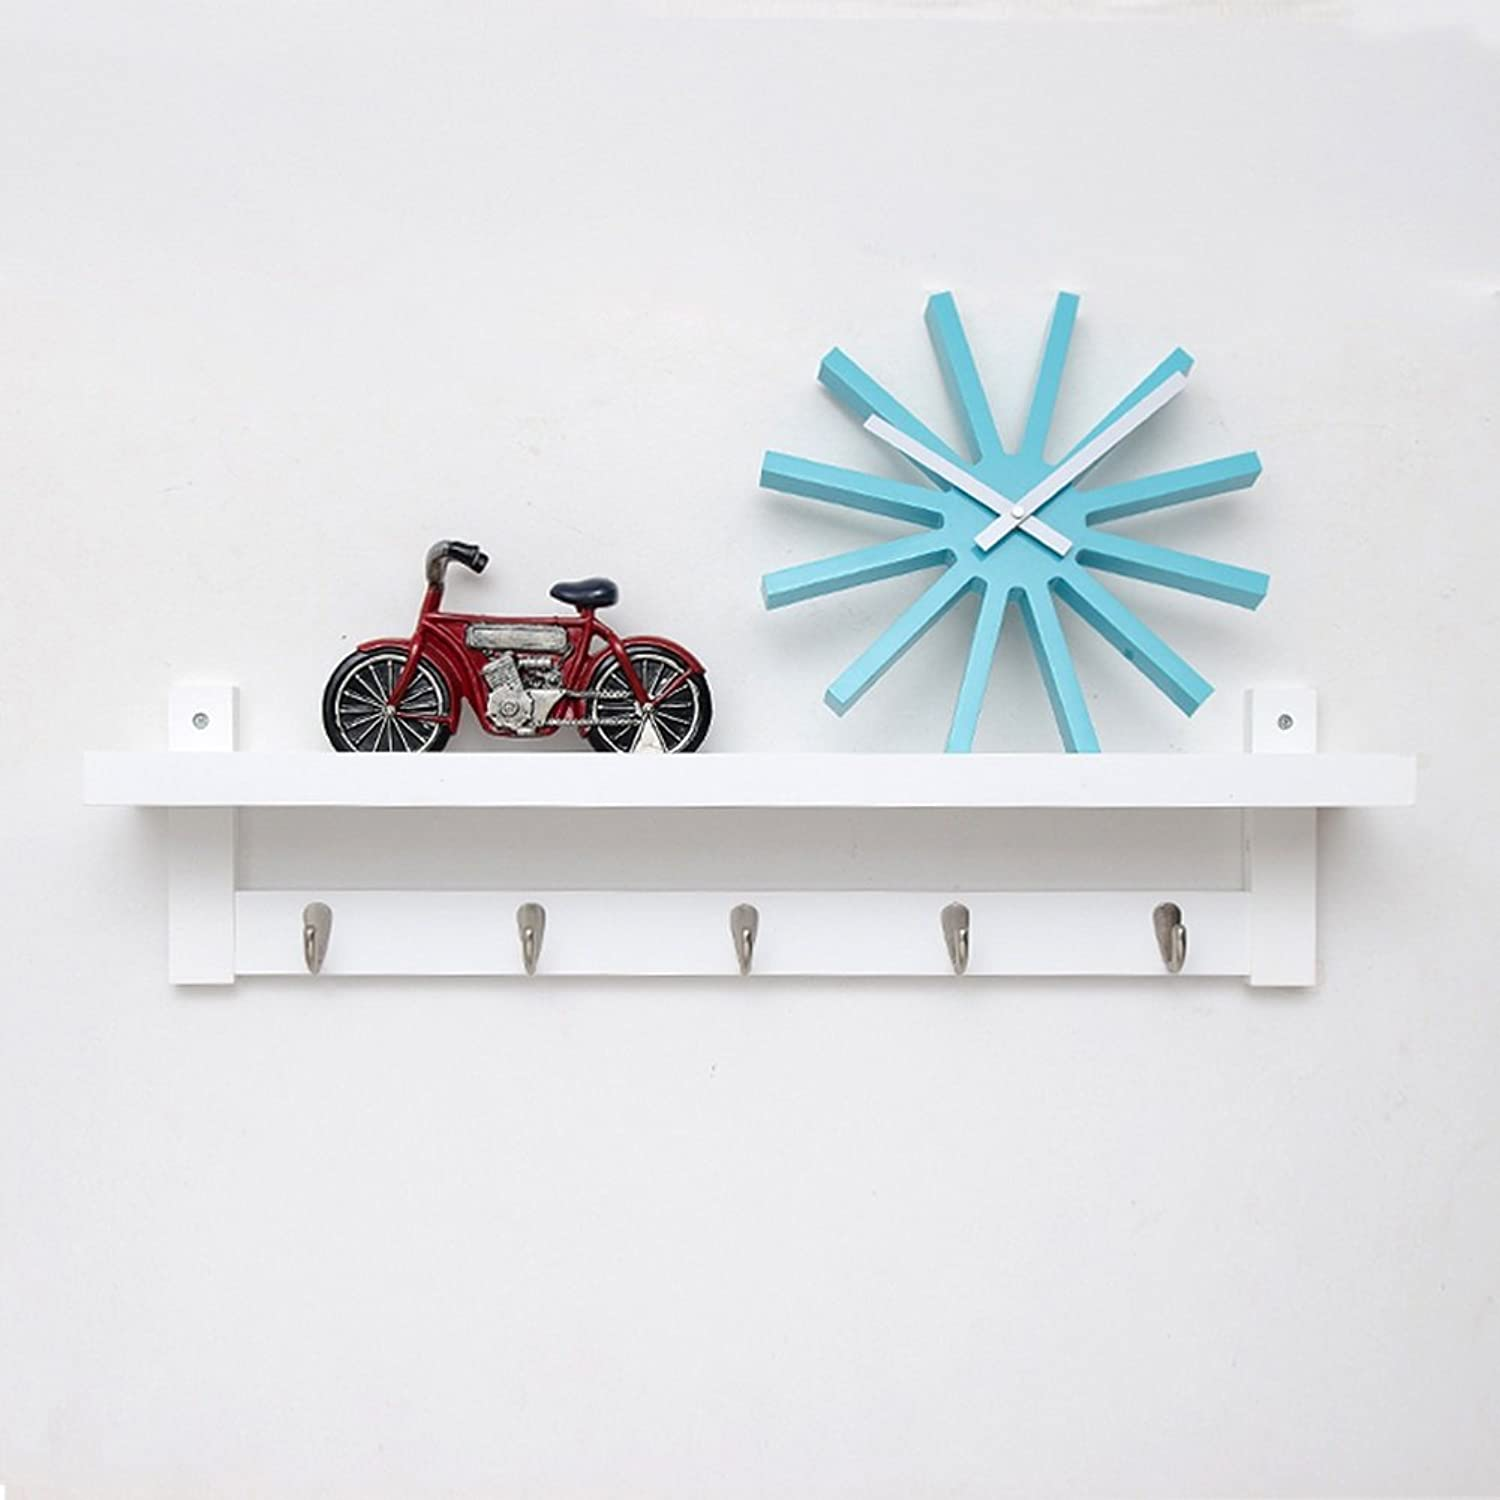 LIANGLIANG Floating Wall Shelves Shelf Coat Rack Hanger Top Ministry Storage Design Metal Hook Hanger Solid Wood 3 colors 3 Kinds of Sizes are Optional (color   White, Size   74  12  18cm)